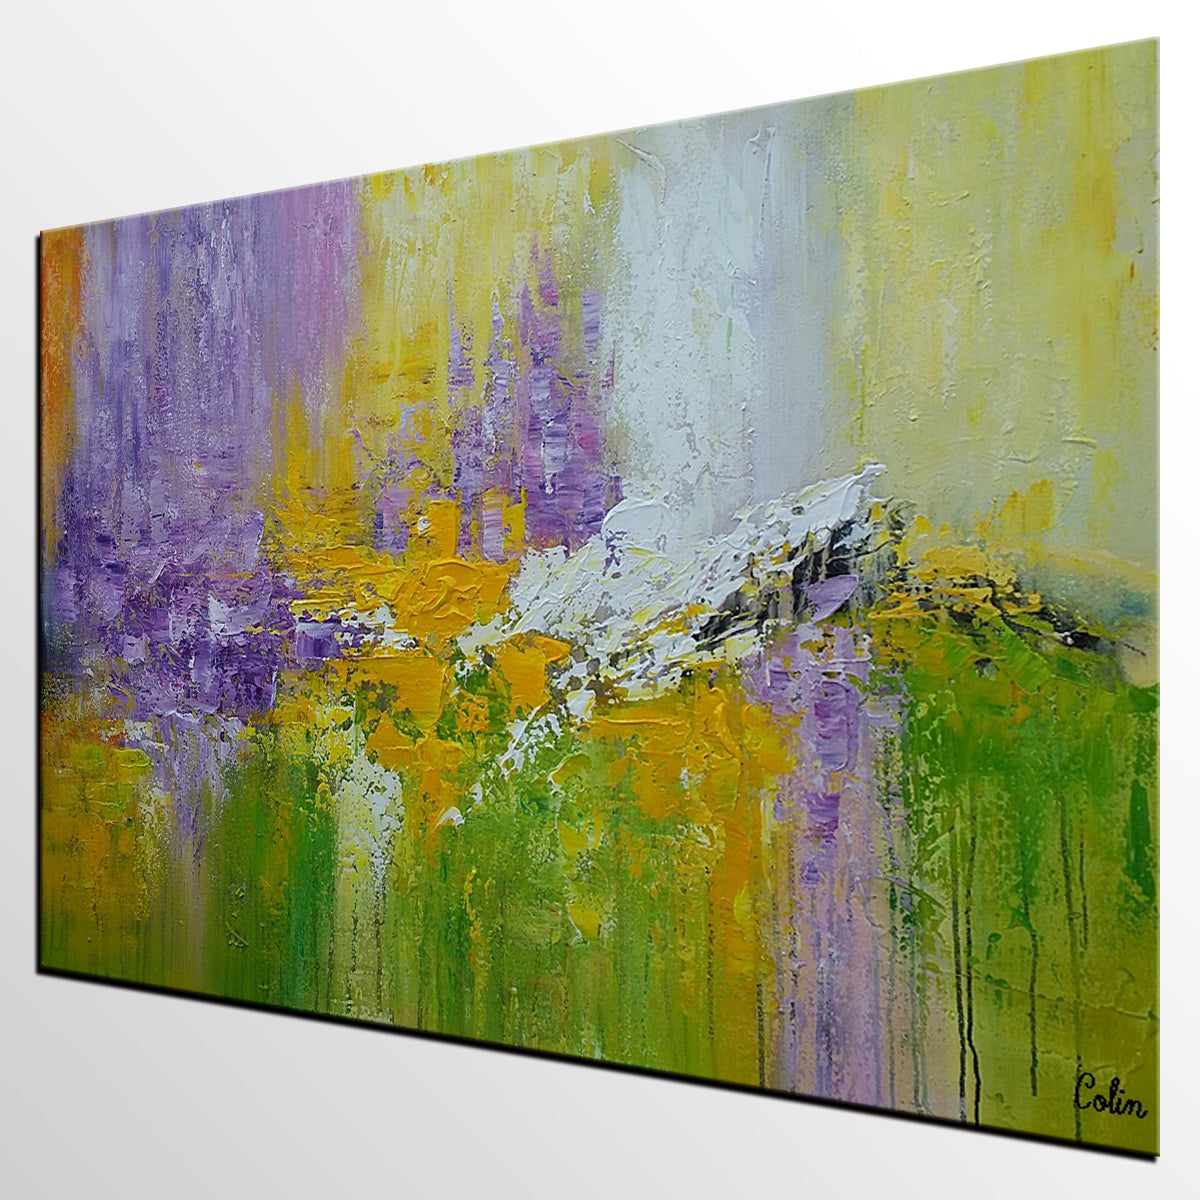 Original Wall Art, Abstract Painting, Large Art, Canvas Art, Wall Art, Modern Artwork, Canvas Painting, Abstract Art, Art on Canvas 208